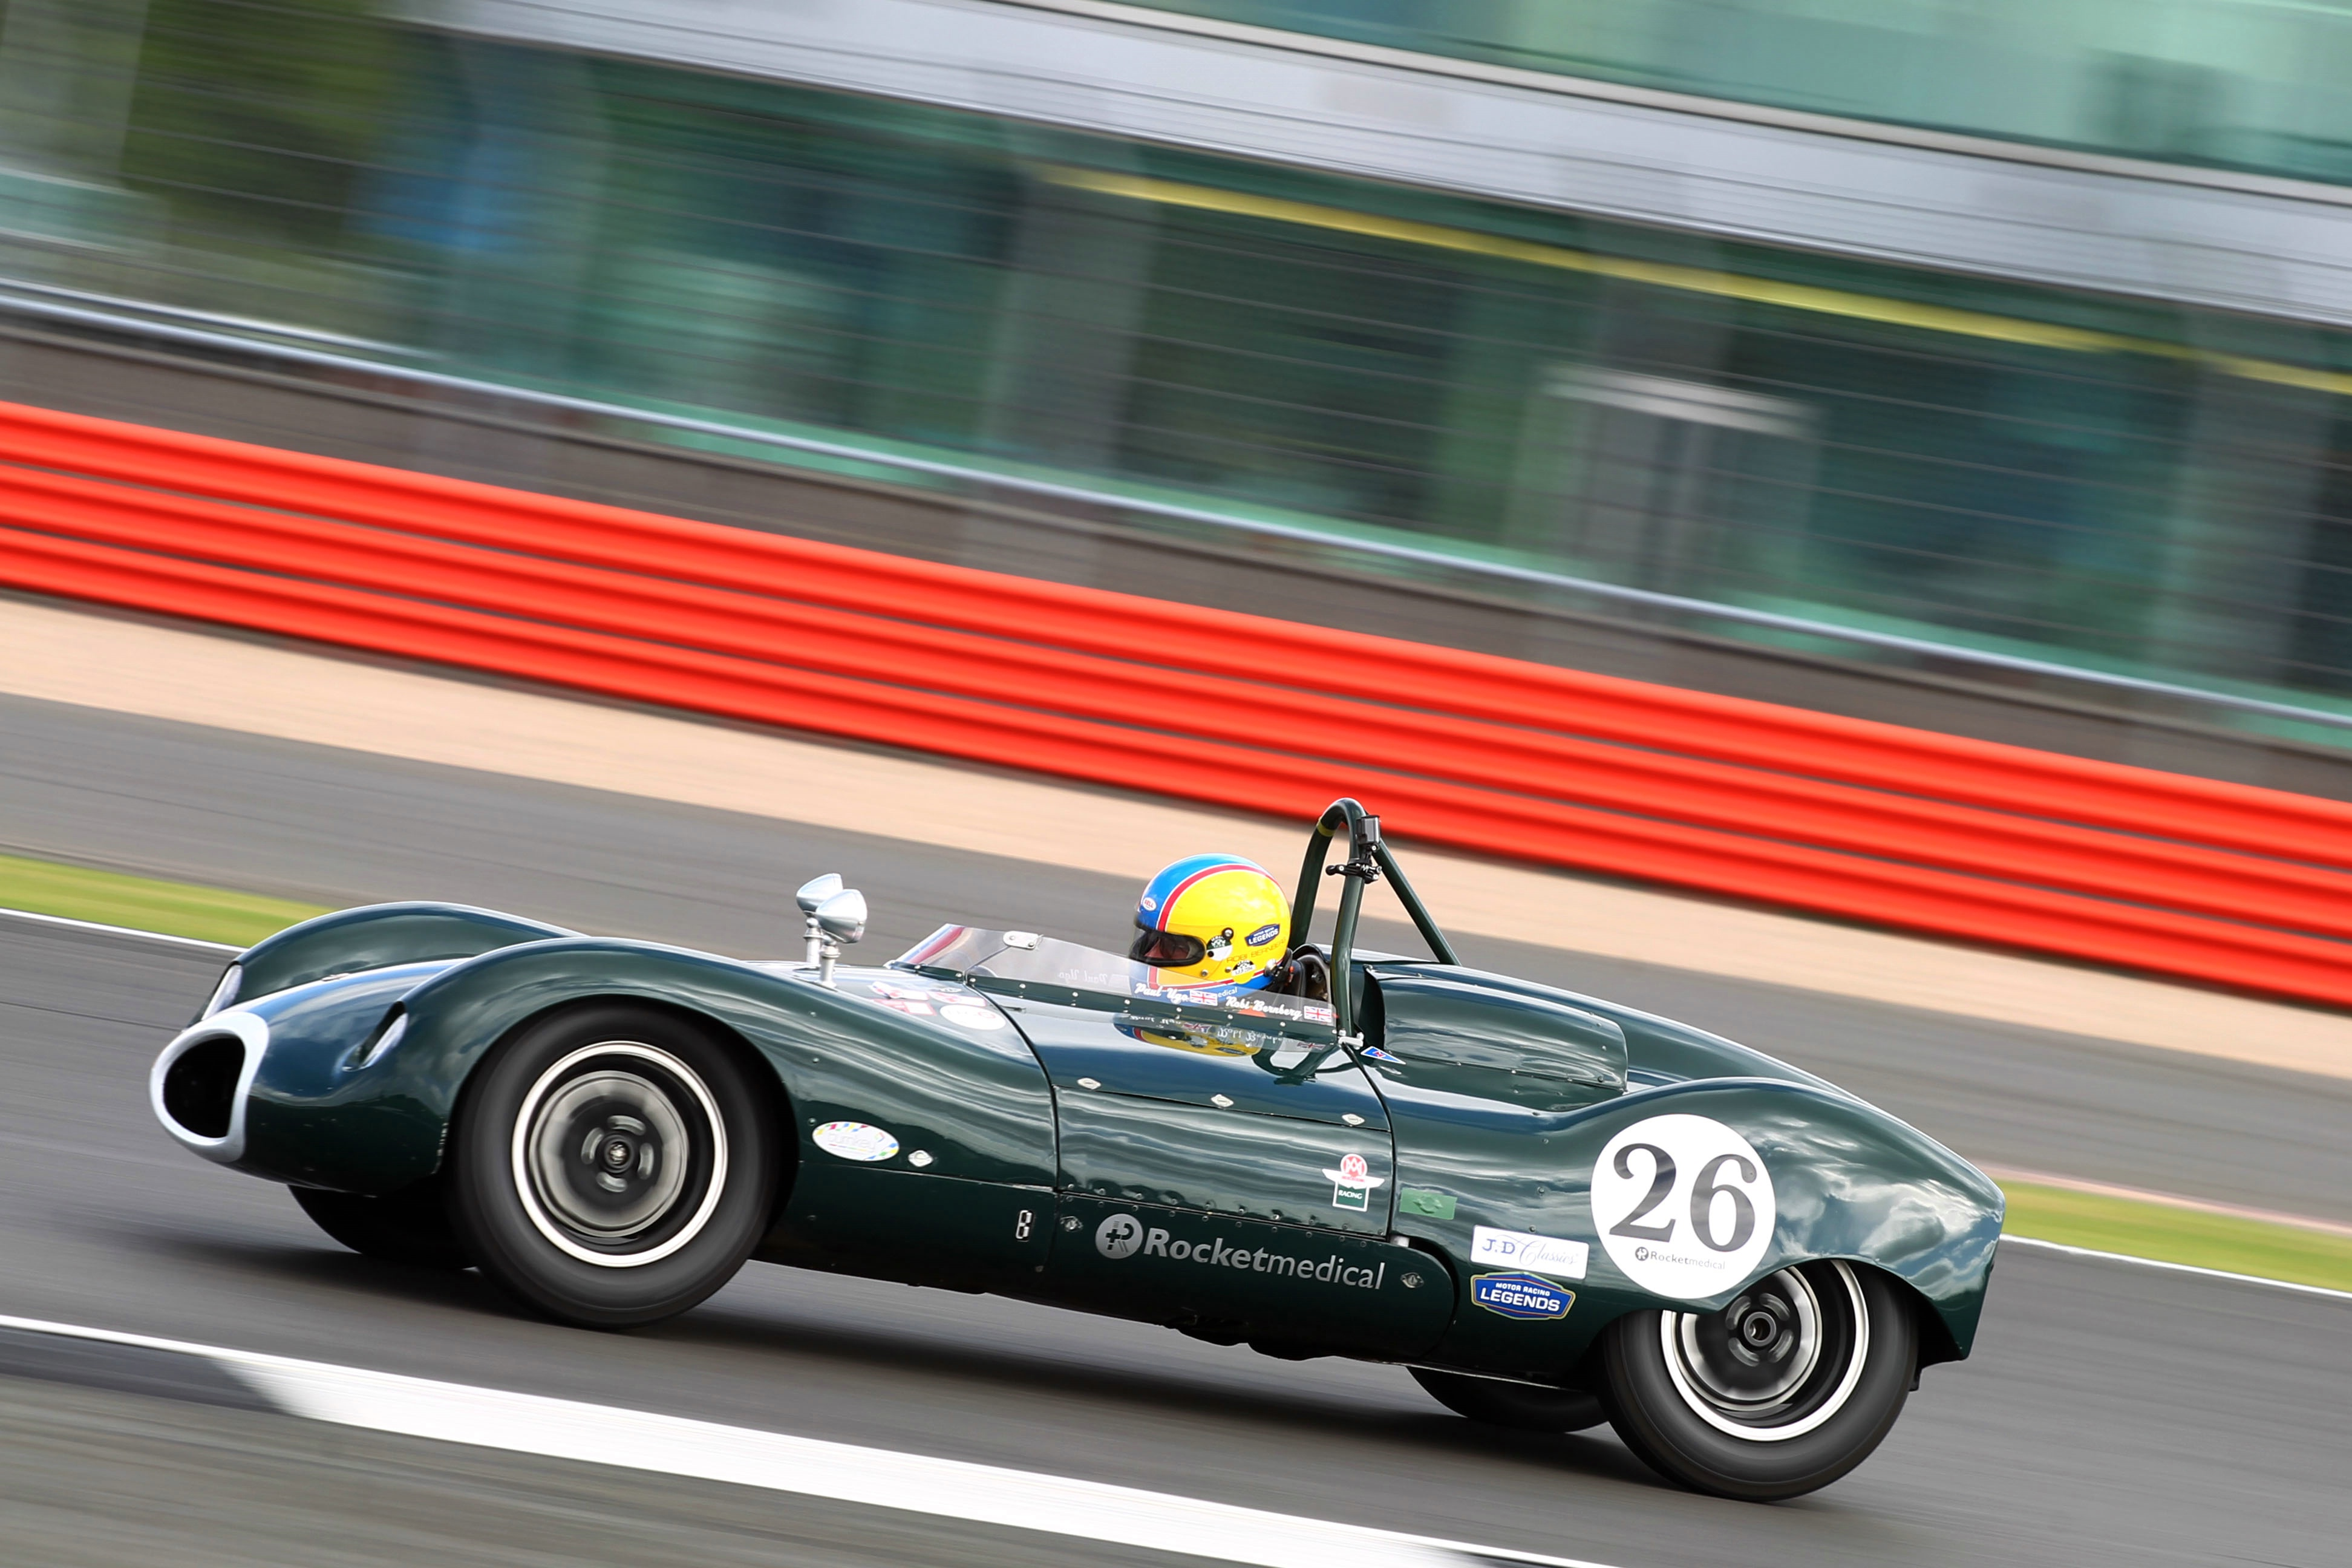 Silverstone Classic 28-30 July 2017 At the Home of British Motorsport Stirling Moss pre 61 Sports cars xxxxxxxdrivercarxxxxx Free for editorial use only Photo credit – JEP